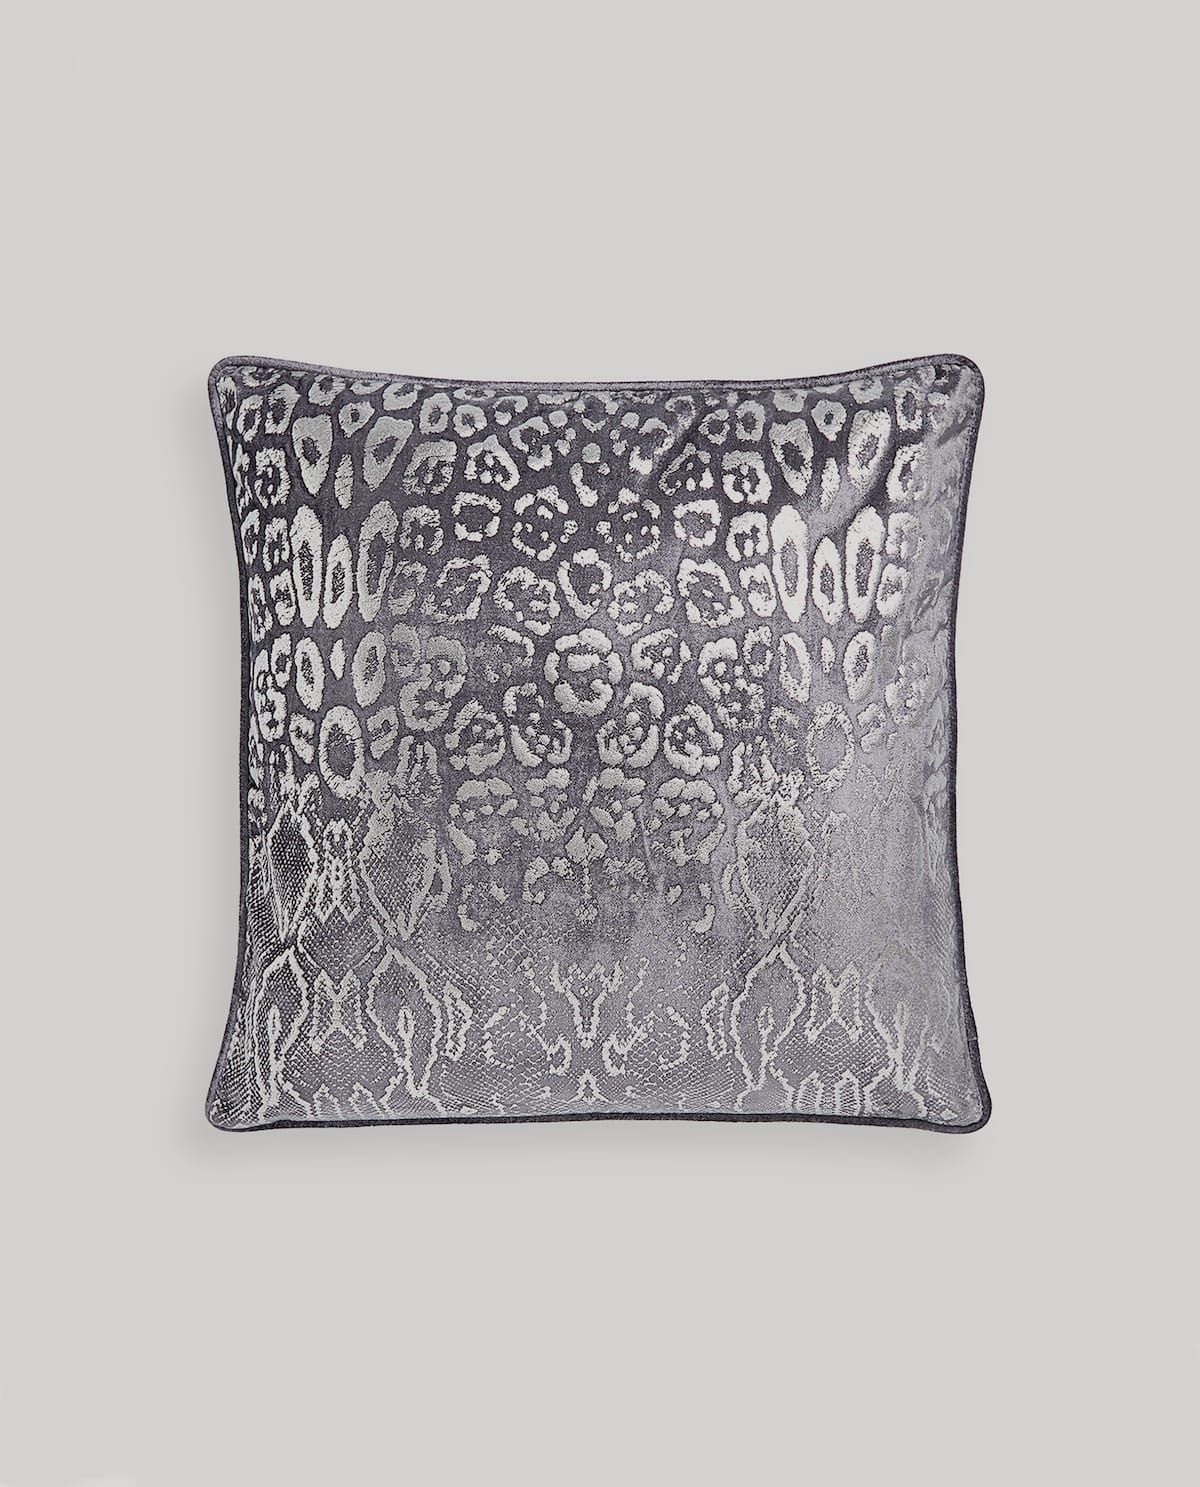 Image 0 Of The Product 1 Animal Print Throw Pillow Cover